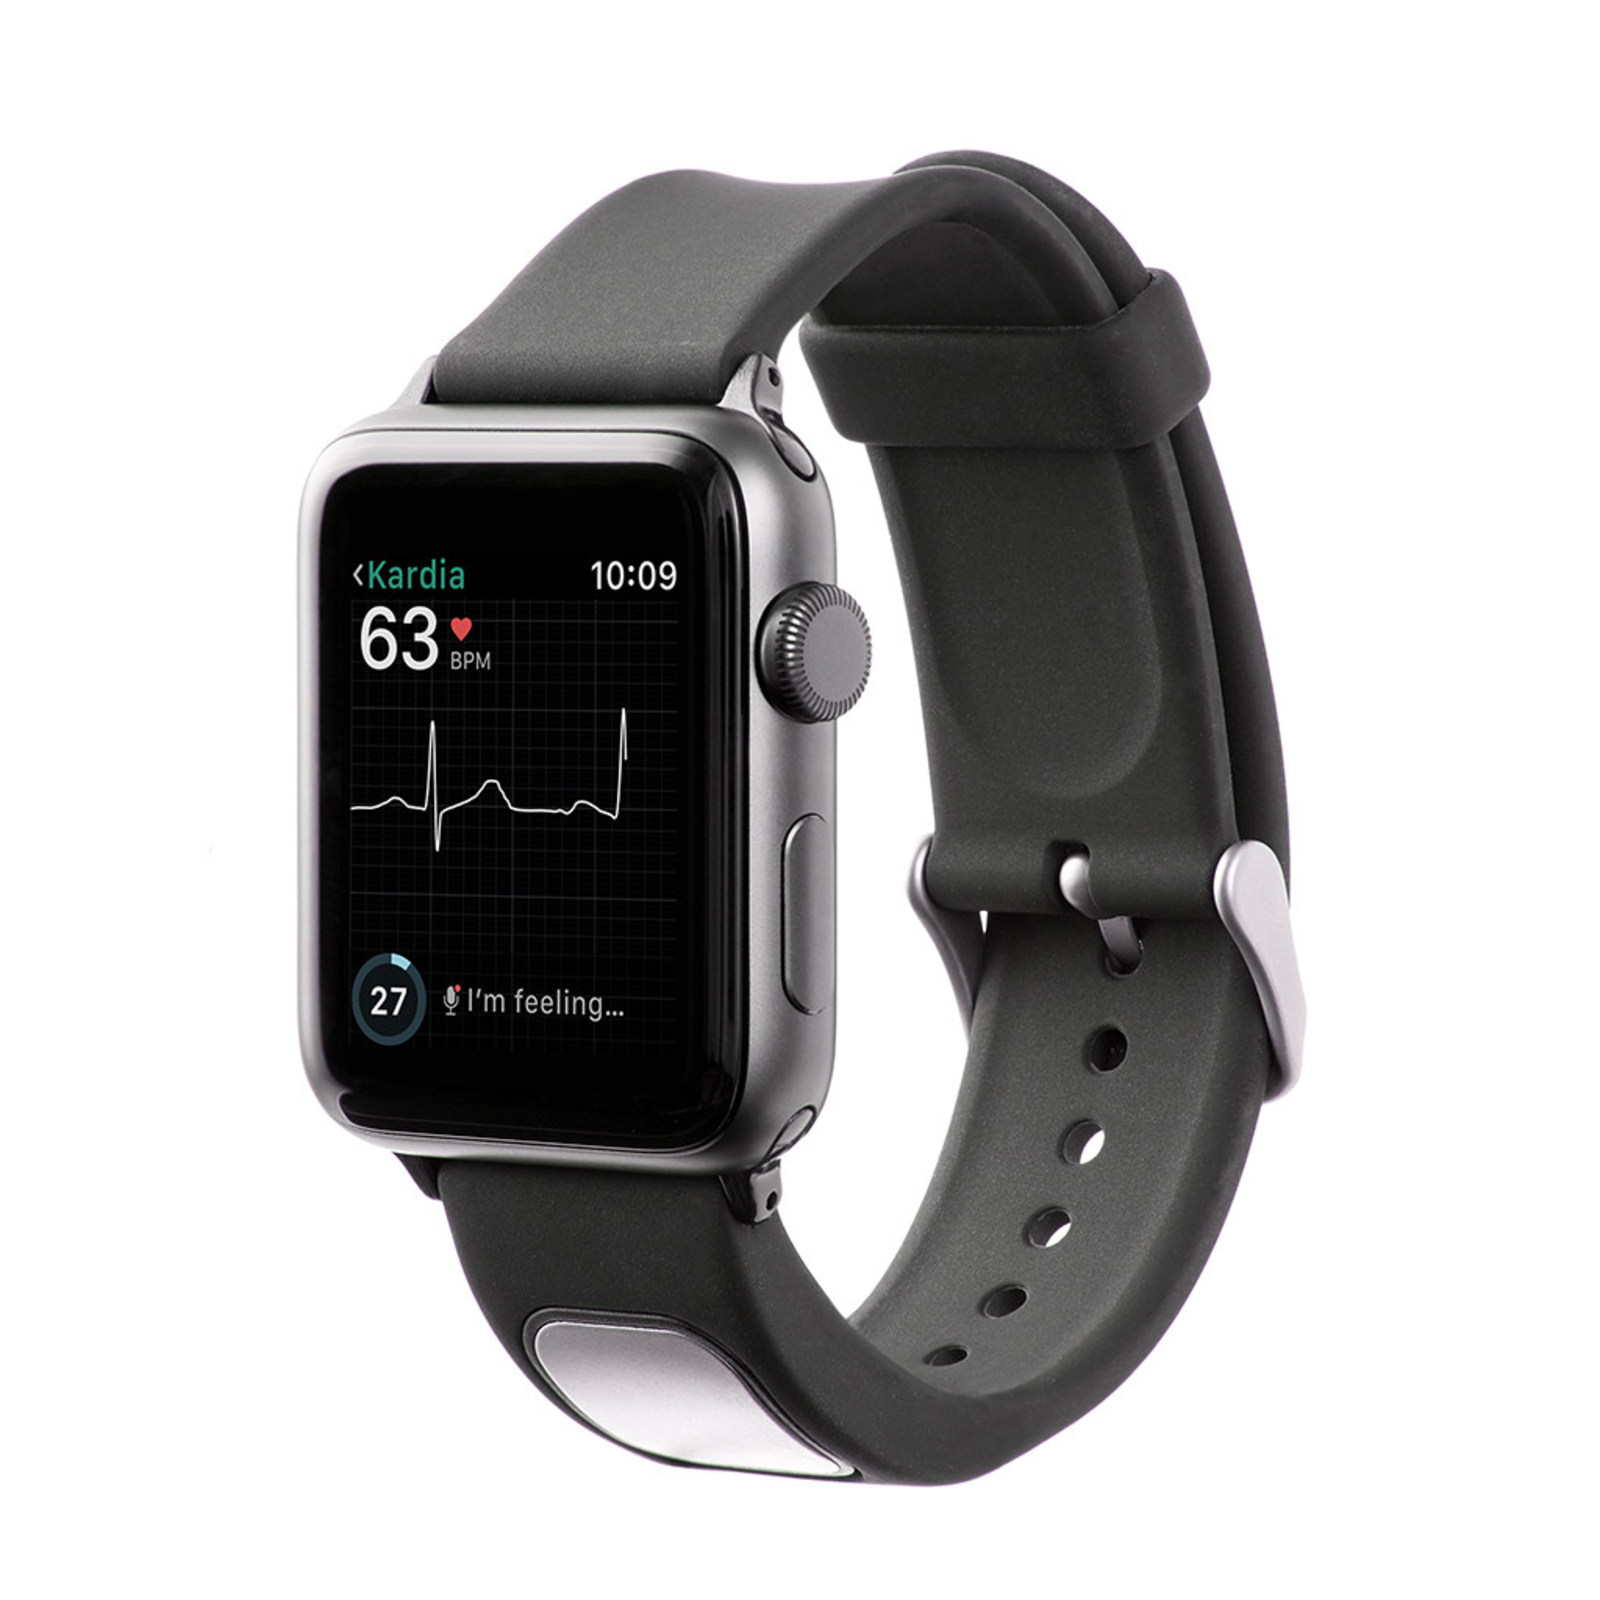 Reading Kardia Band Is First Apple Watch Accessory To Get FDA Clearance